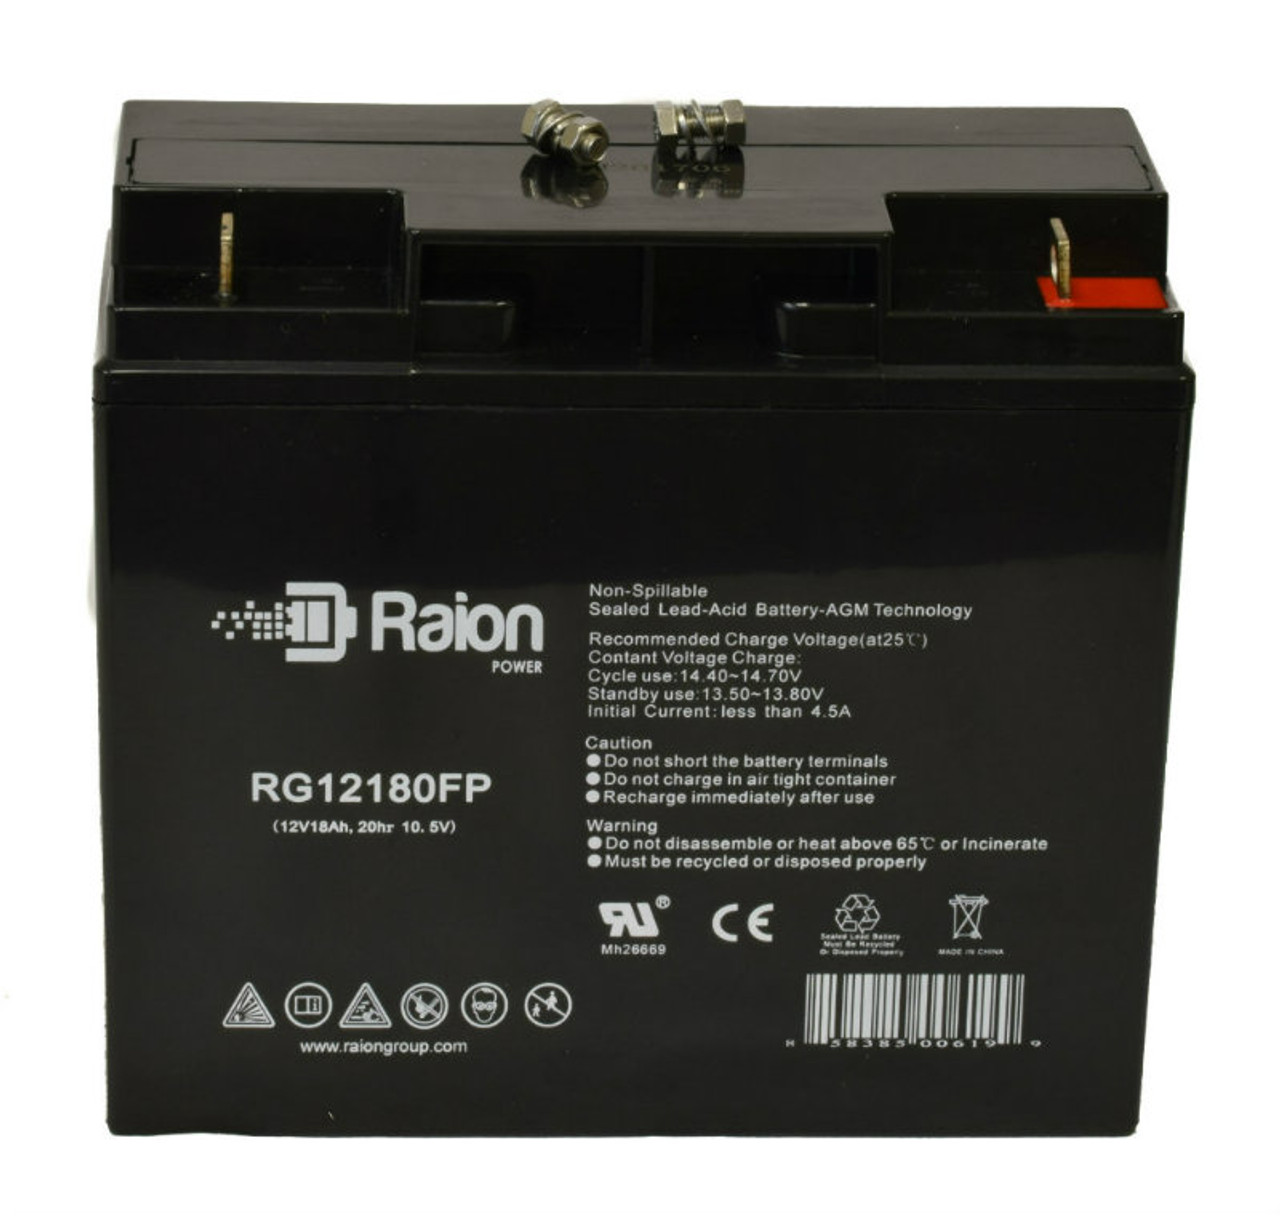 Raion Power 12V 18Ah AGM Battery Data Sheet for Merits Pioneer 2 S246 Deluxe Mobility Scooter